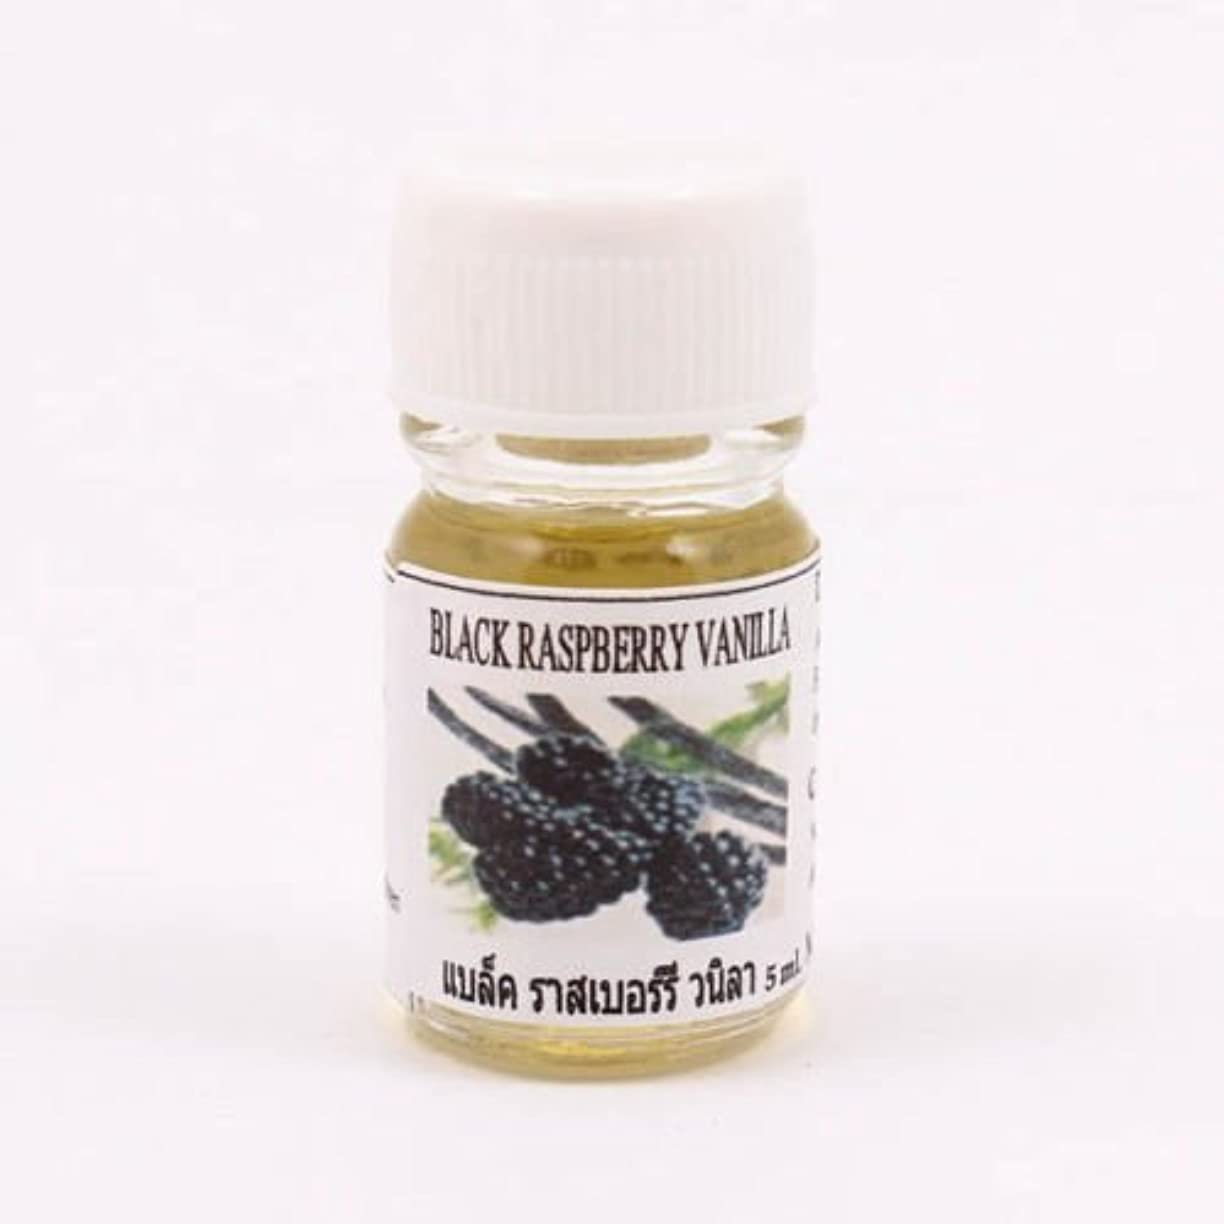 6X Black Raspberry Vanilla Fragrance Essential Oil 5ML. Diffuser Burner